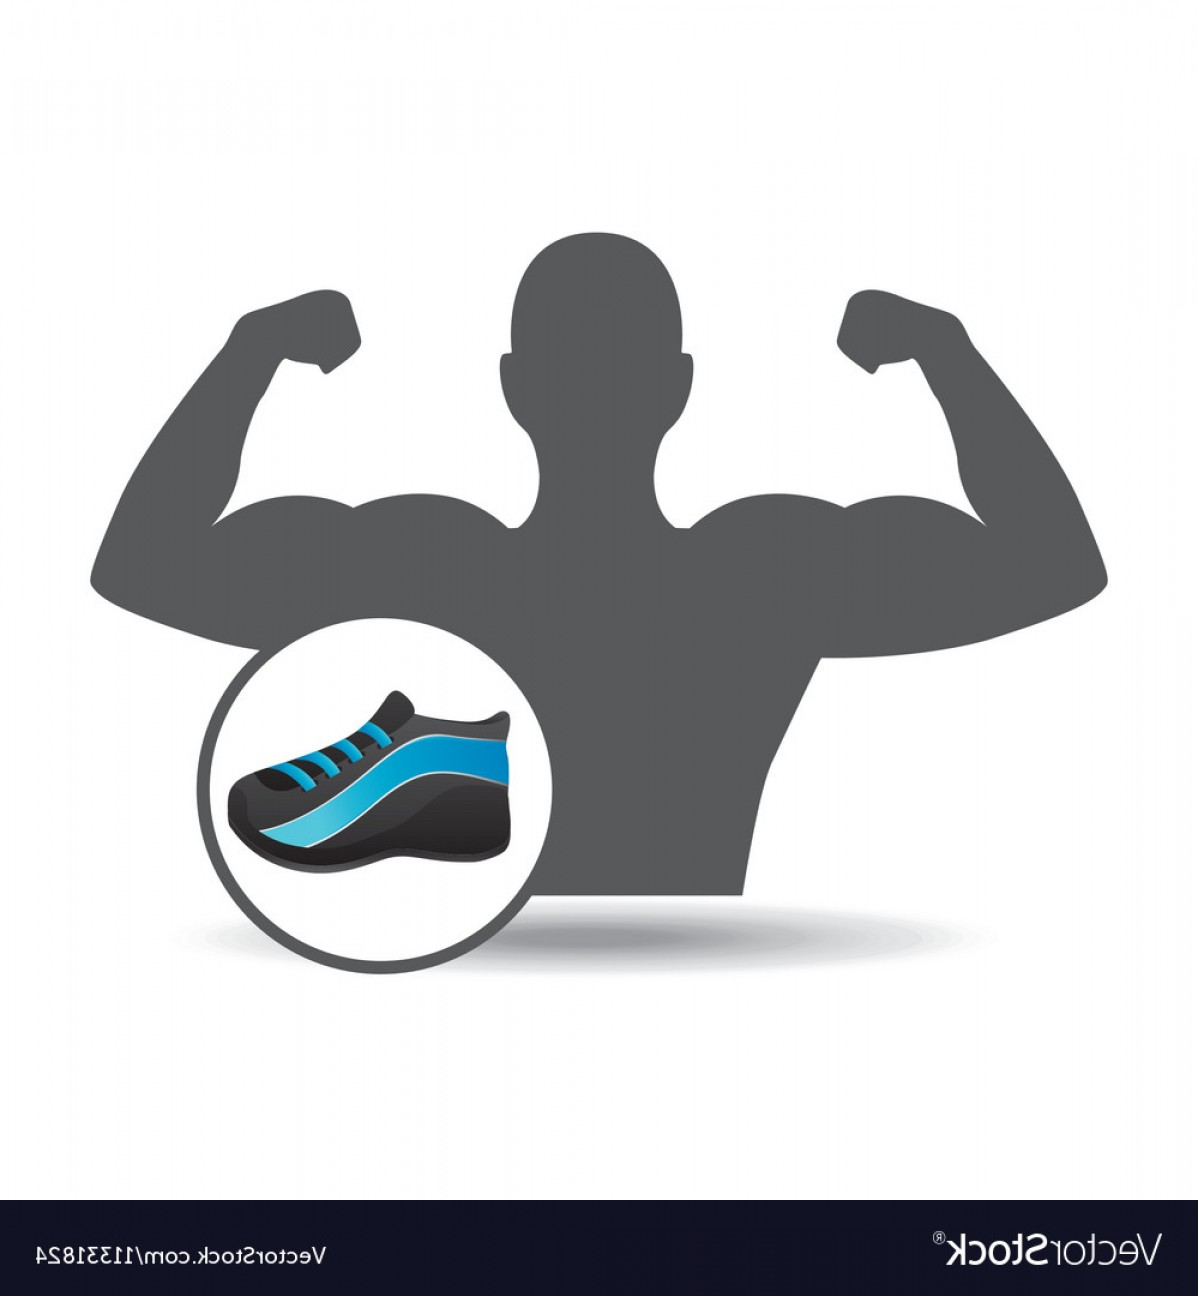 Sneaker Silhouette Vector: Fitness Silhouette Sneaker Gym Graphic Vector